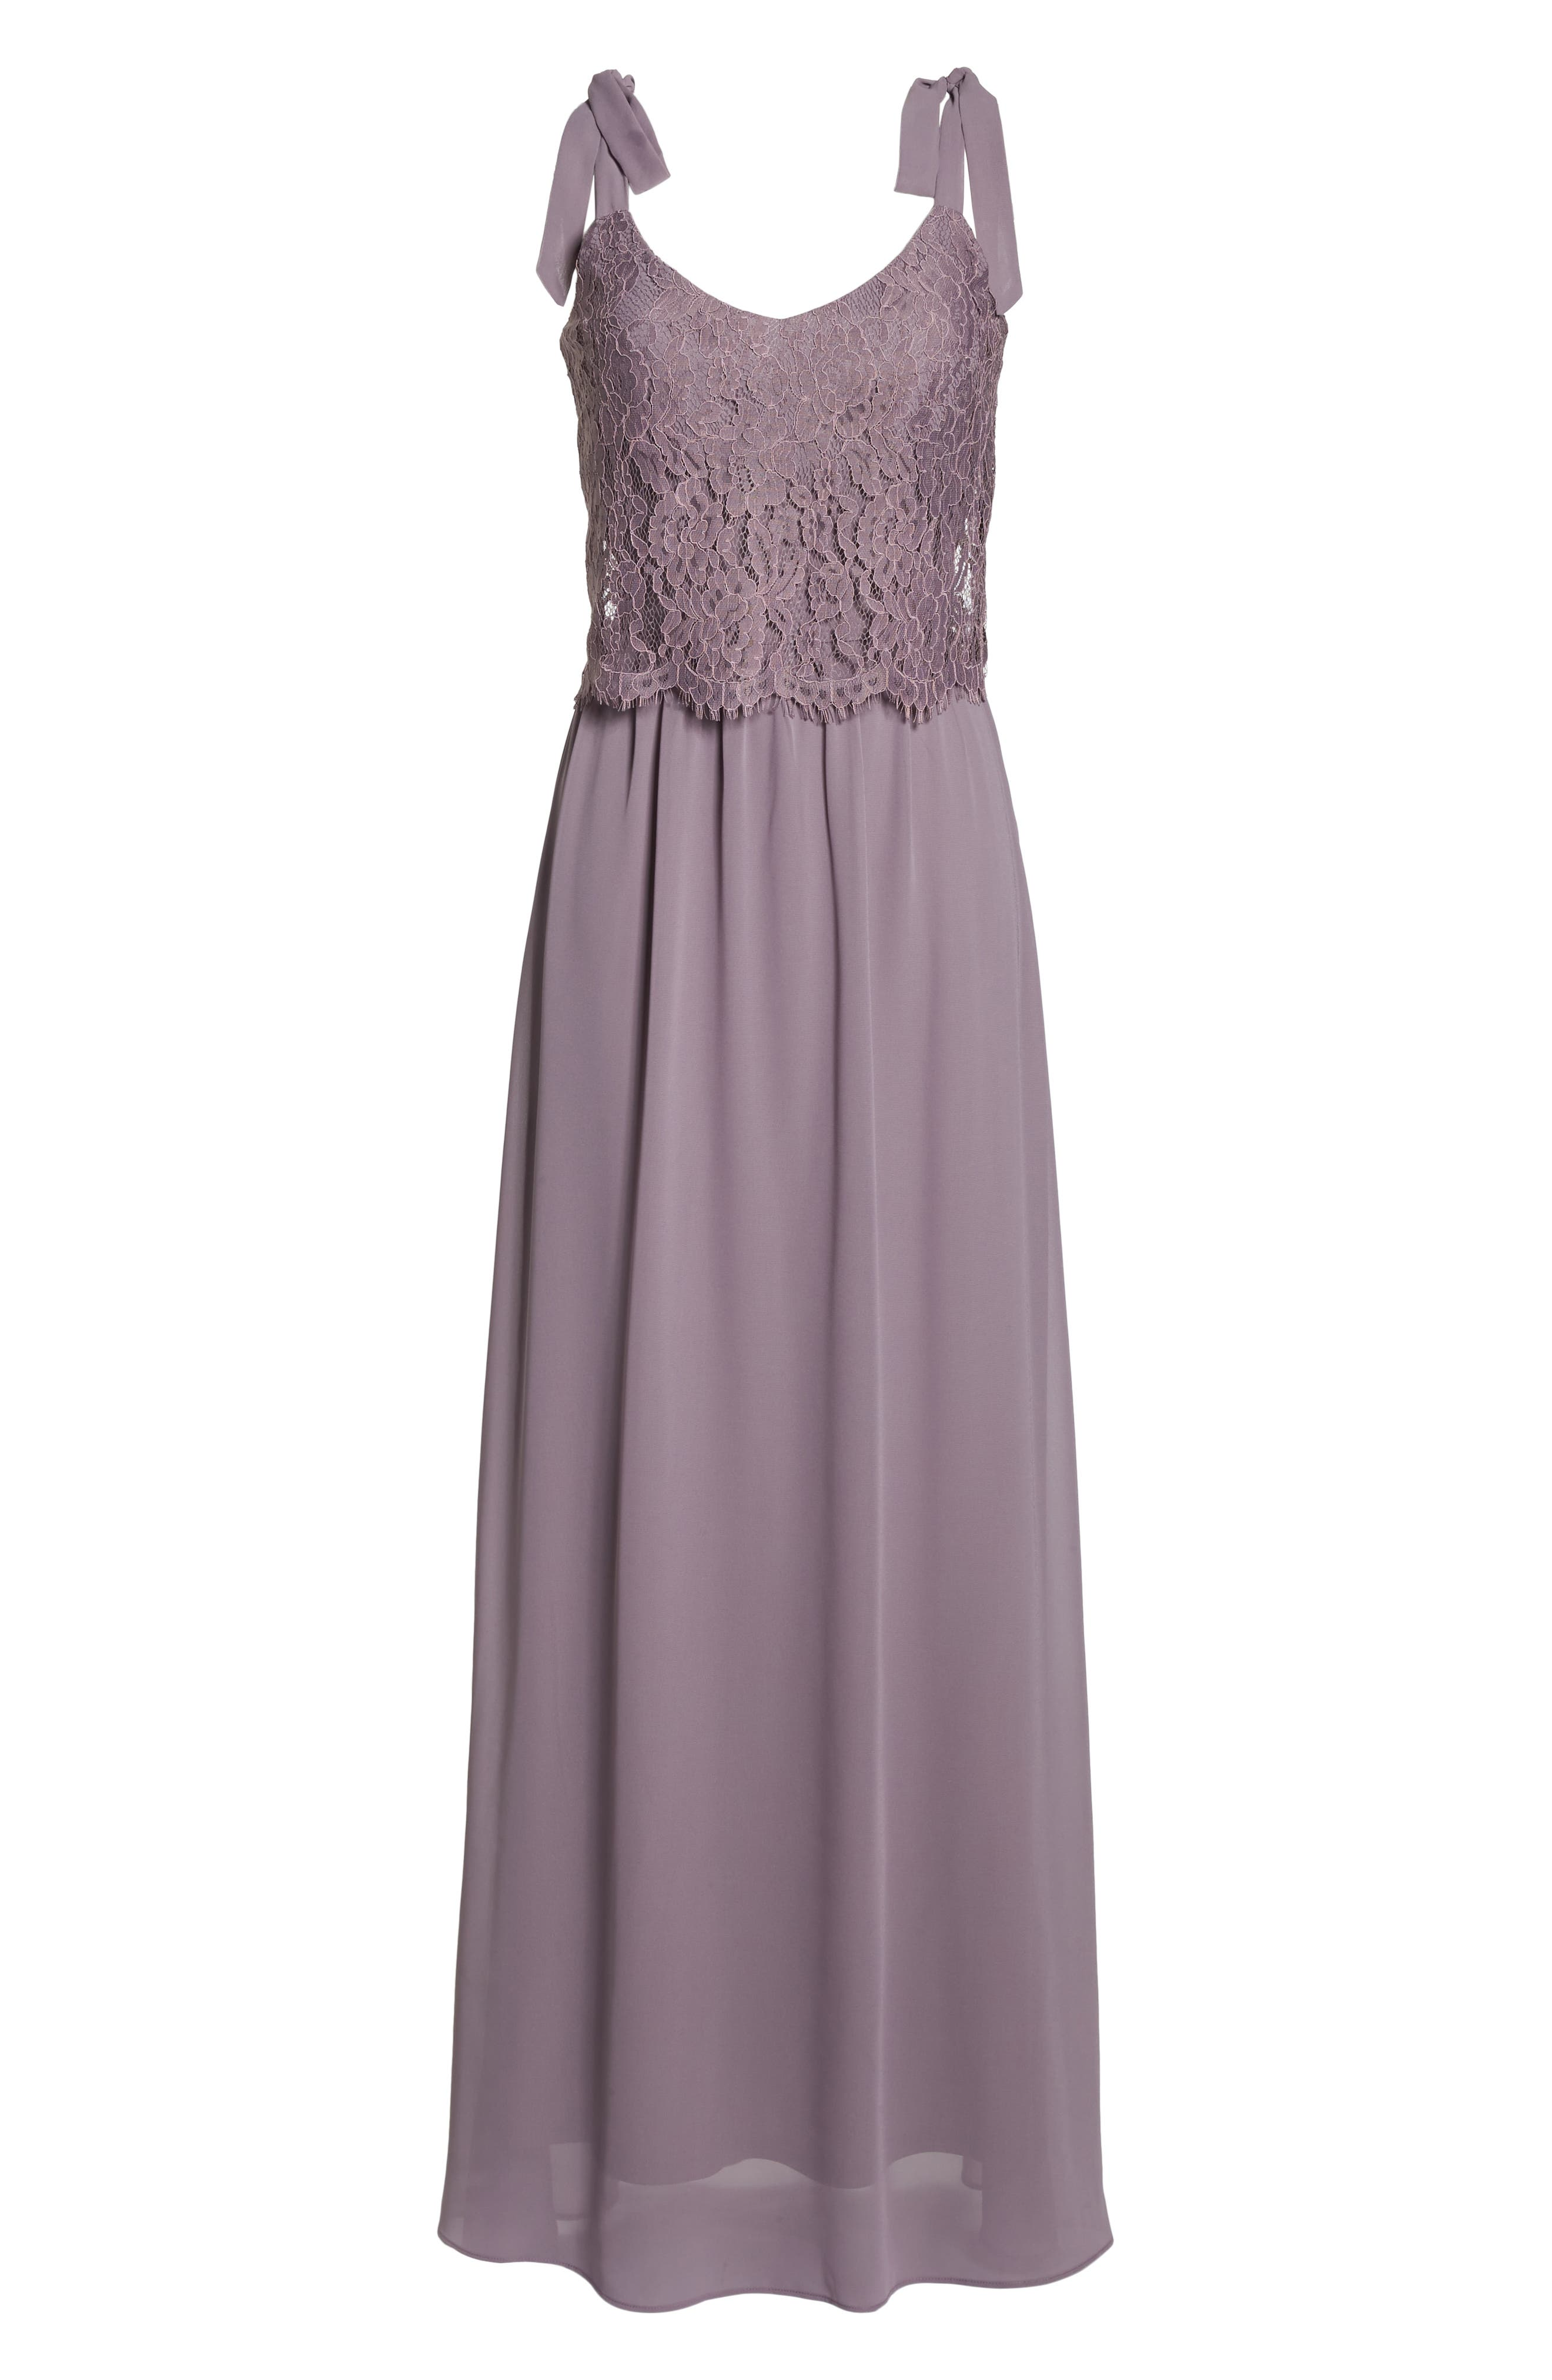 Koko Tie Shoulder Lace Bodice Gown,                             Alternate thumbnail 7, color,                             LILAC